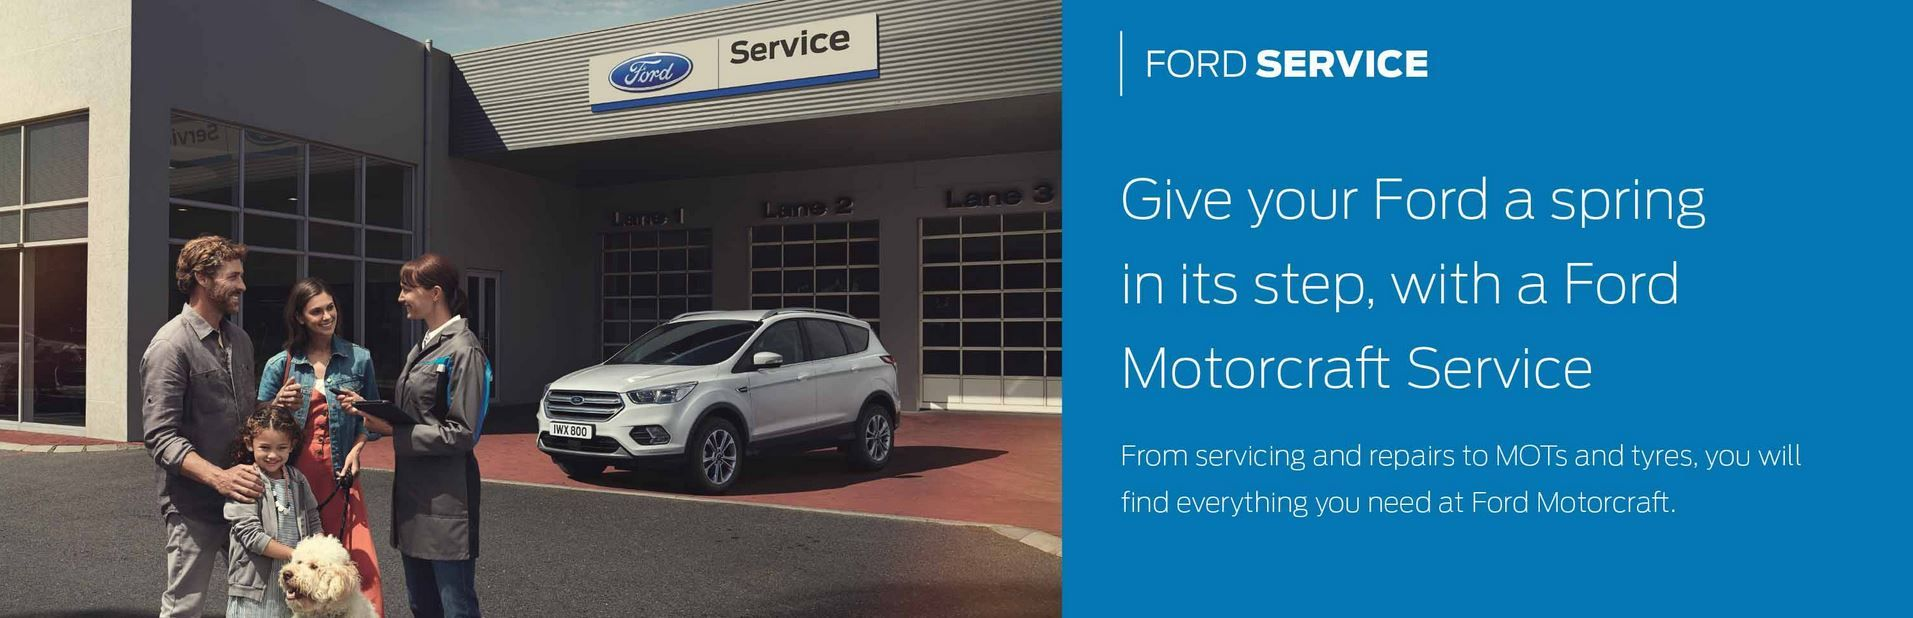 Serviced with pride at Immingham Motors